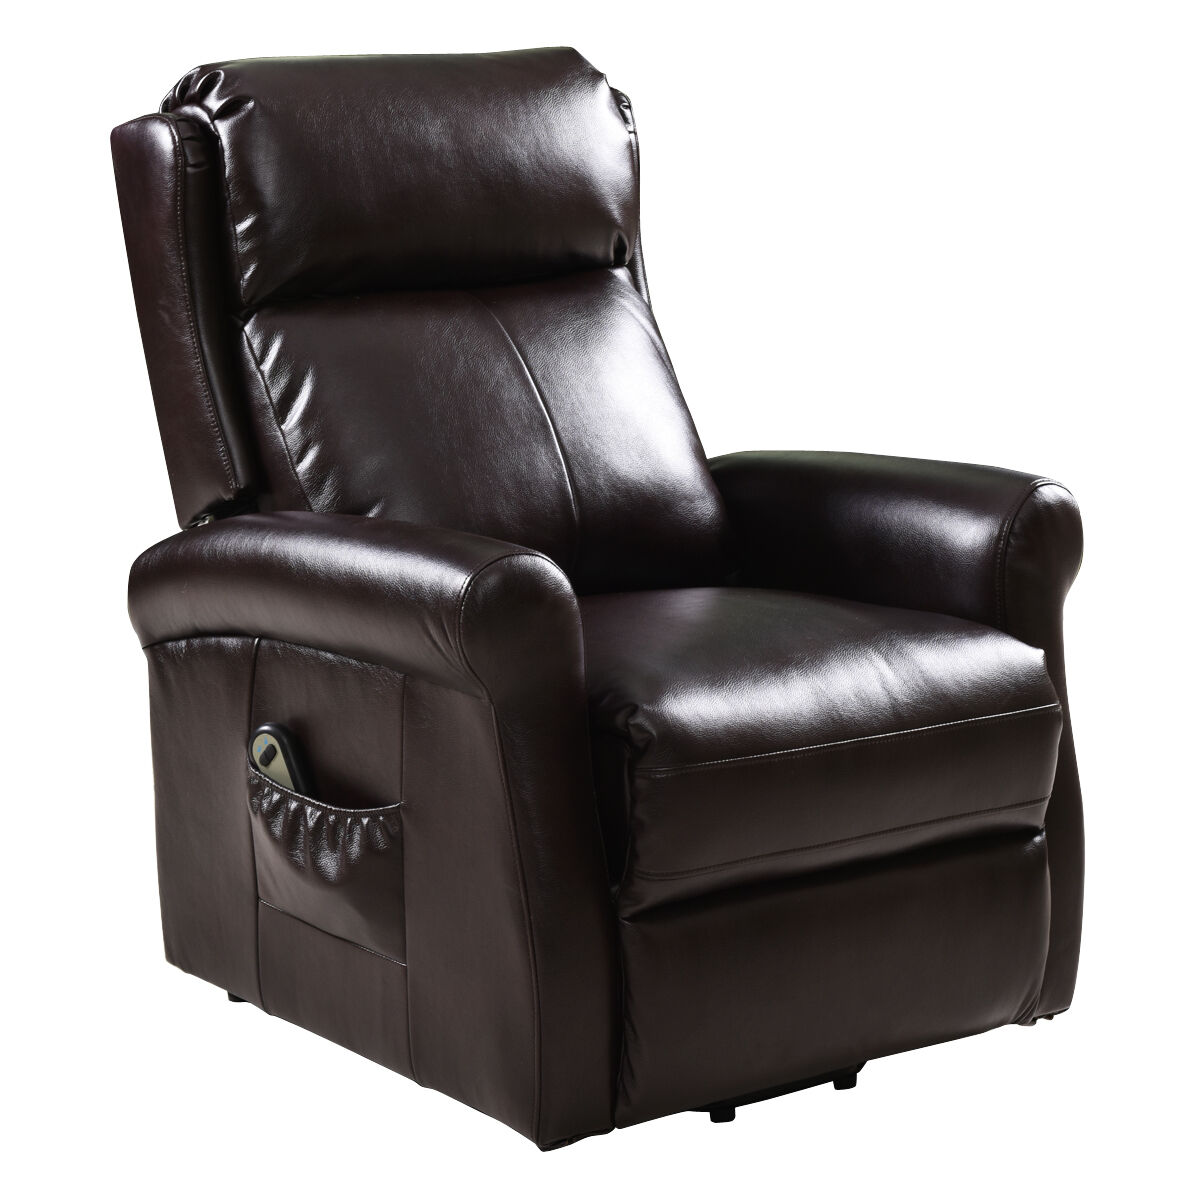 Electric Lift Chair Recliners Remote Living Room Furniture Brown